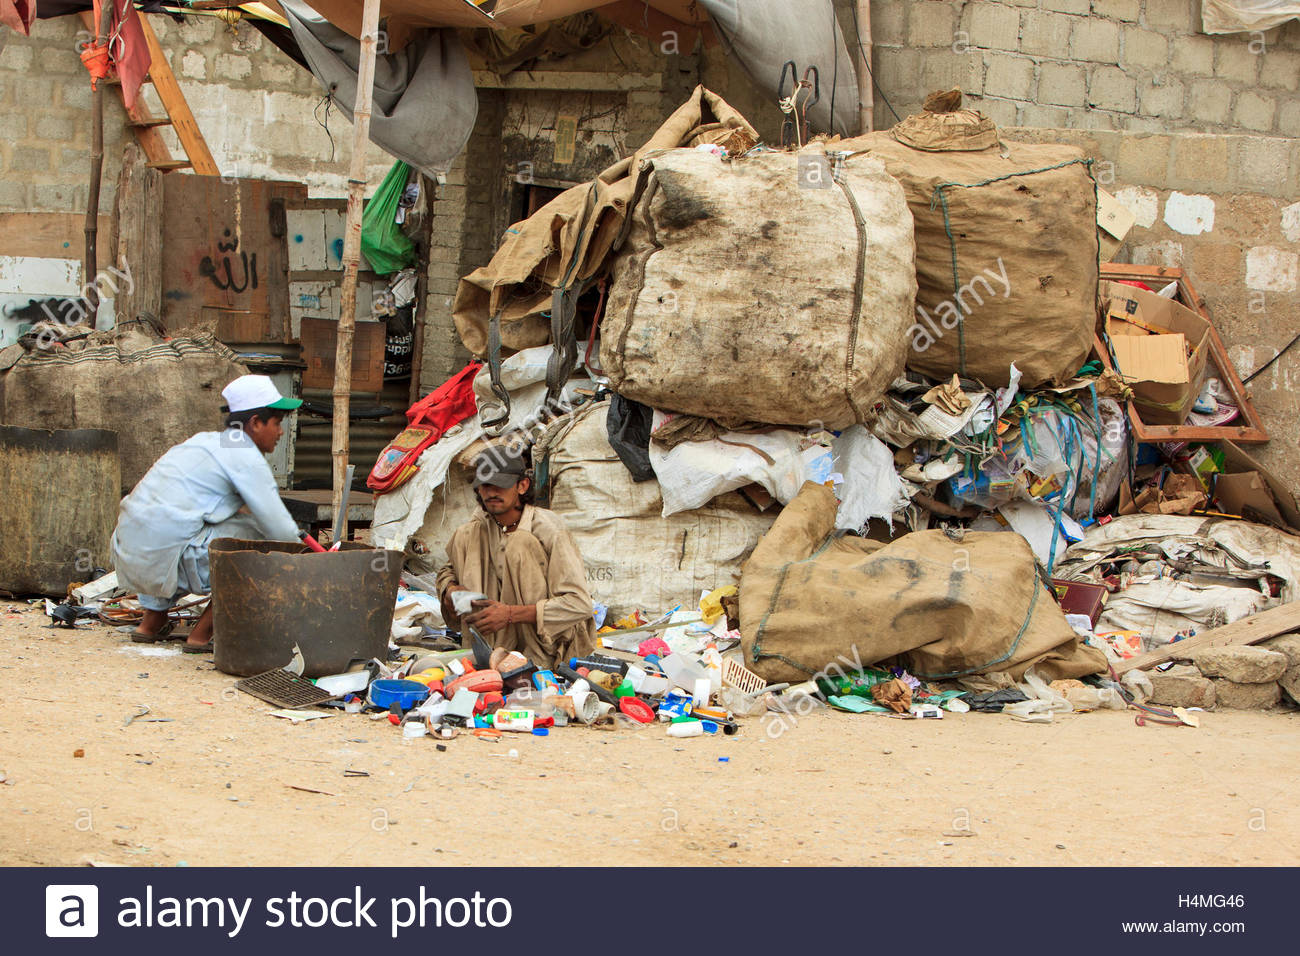 Men sort through trash looking for items of value. - Stock Image